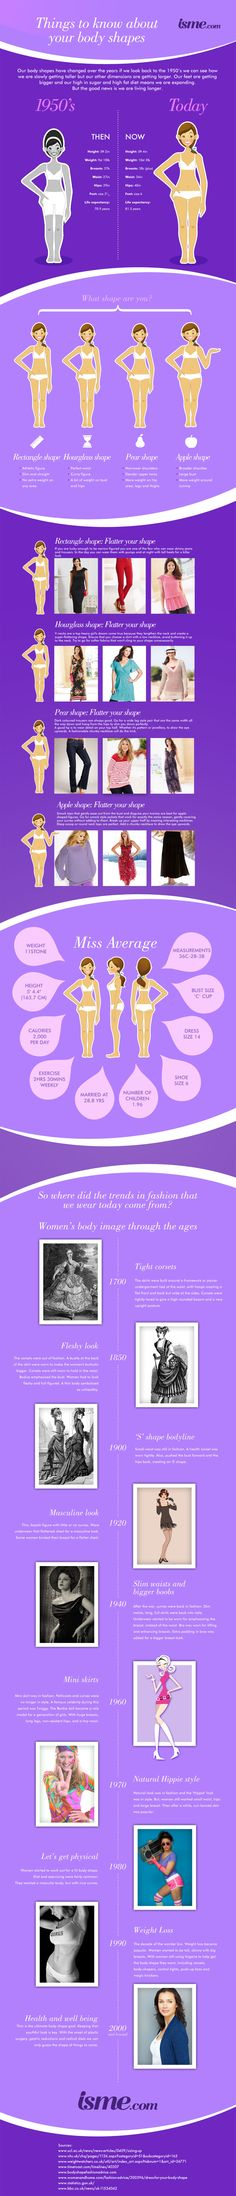 Knowing your body shape is crucial in selecting the right outfits. This Infographic covers 4 most common – Rectangle, Hourglass, Pear and Apple